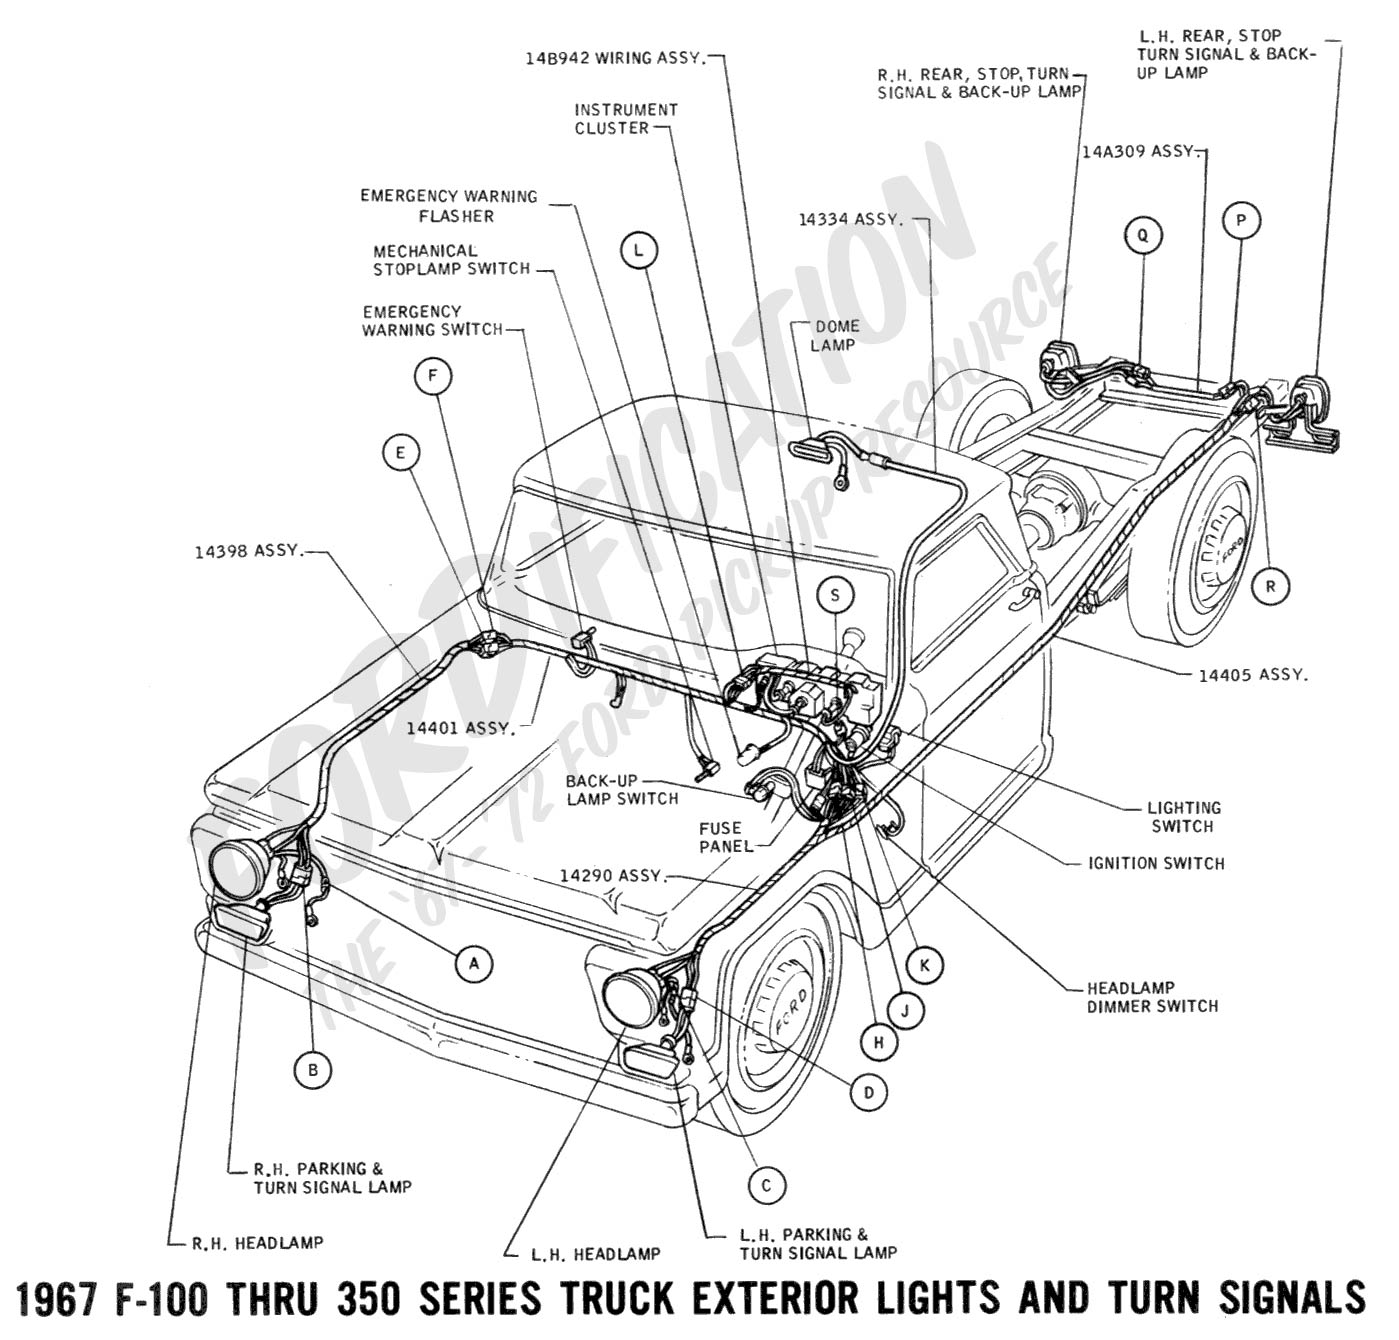 wiring 1967extlights01 ford truck technical drawings and schematics section h wiring 1988 Ford Truck Wiring Diagrams at creativeand.co